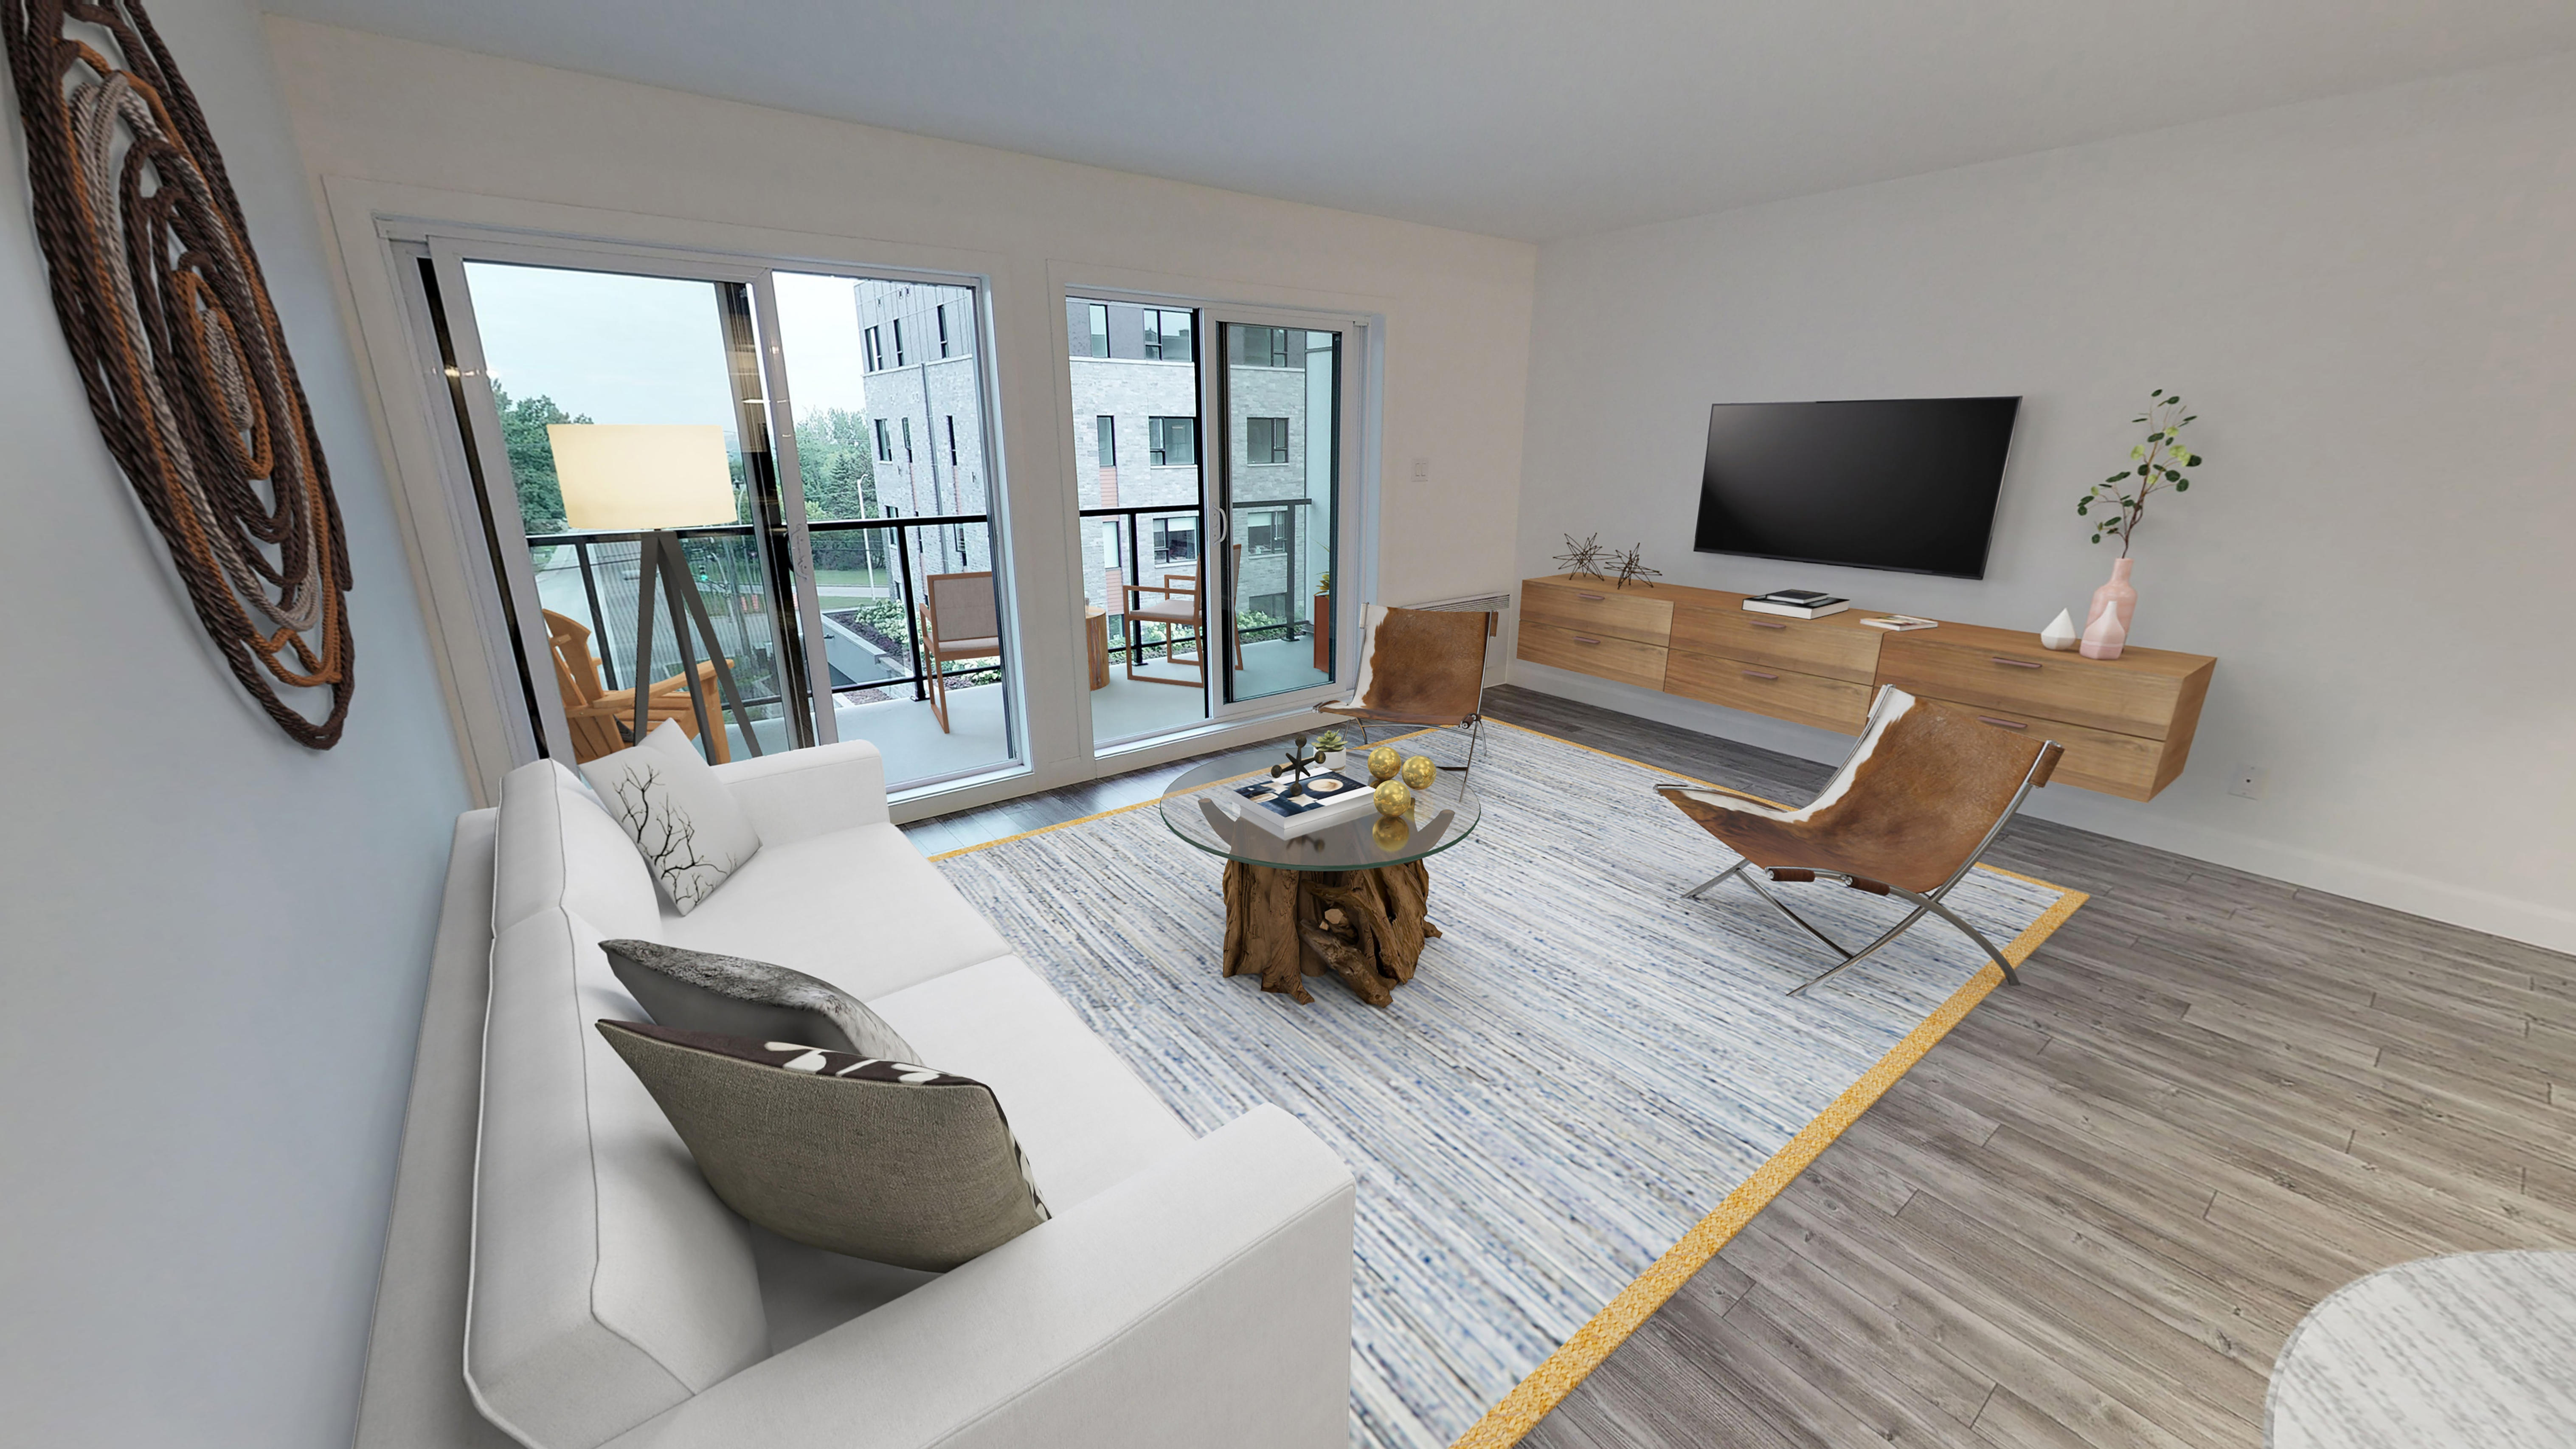 Charlesbourg Appartement A Louer